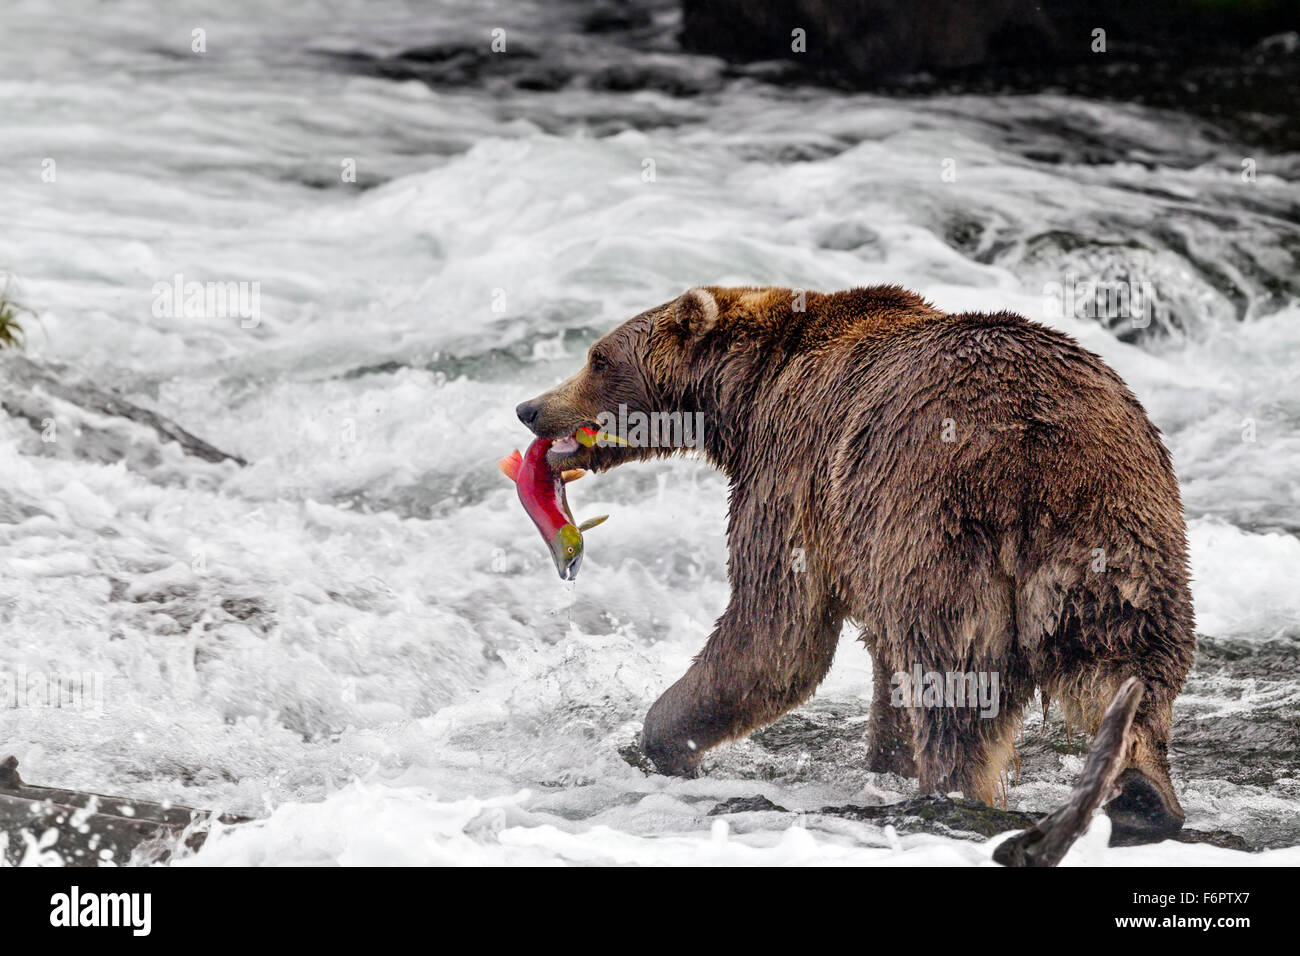 Male brown bear catching spawning red salmon at Brooks Falls, Katmai National Park, Alaska - Stock Image